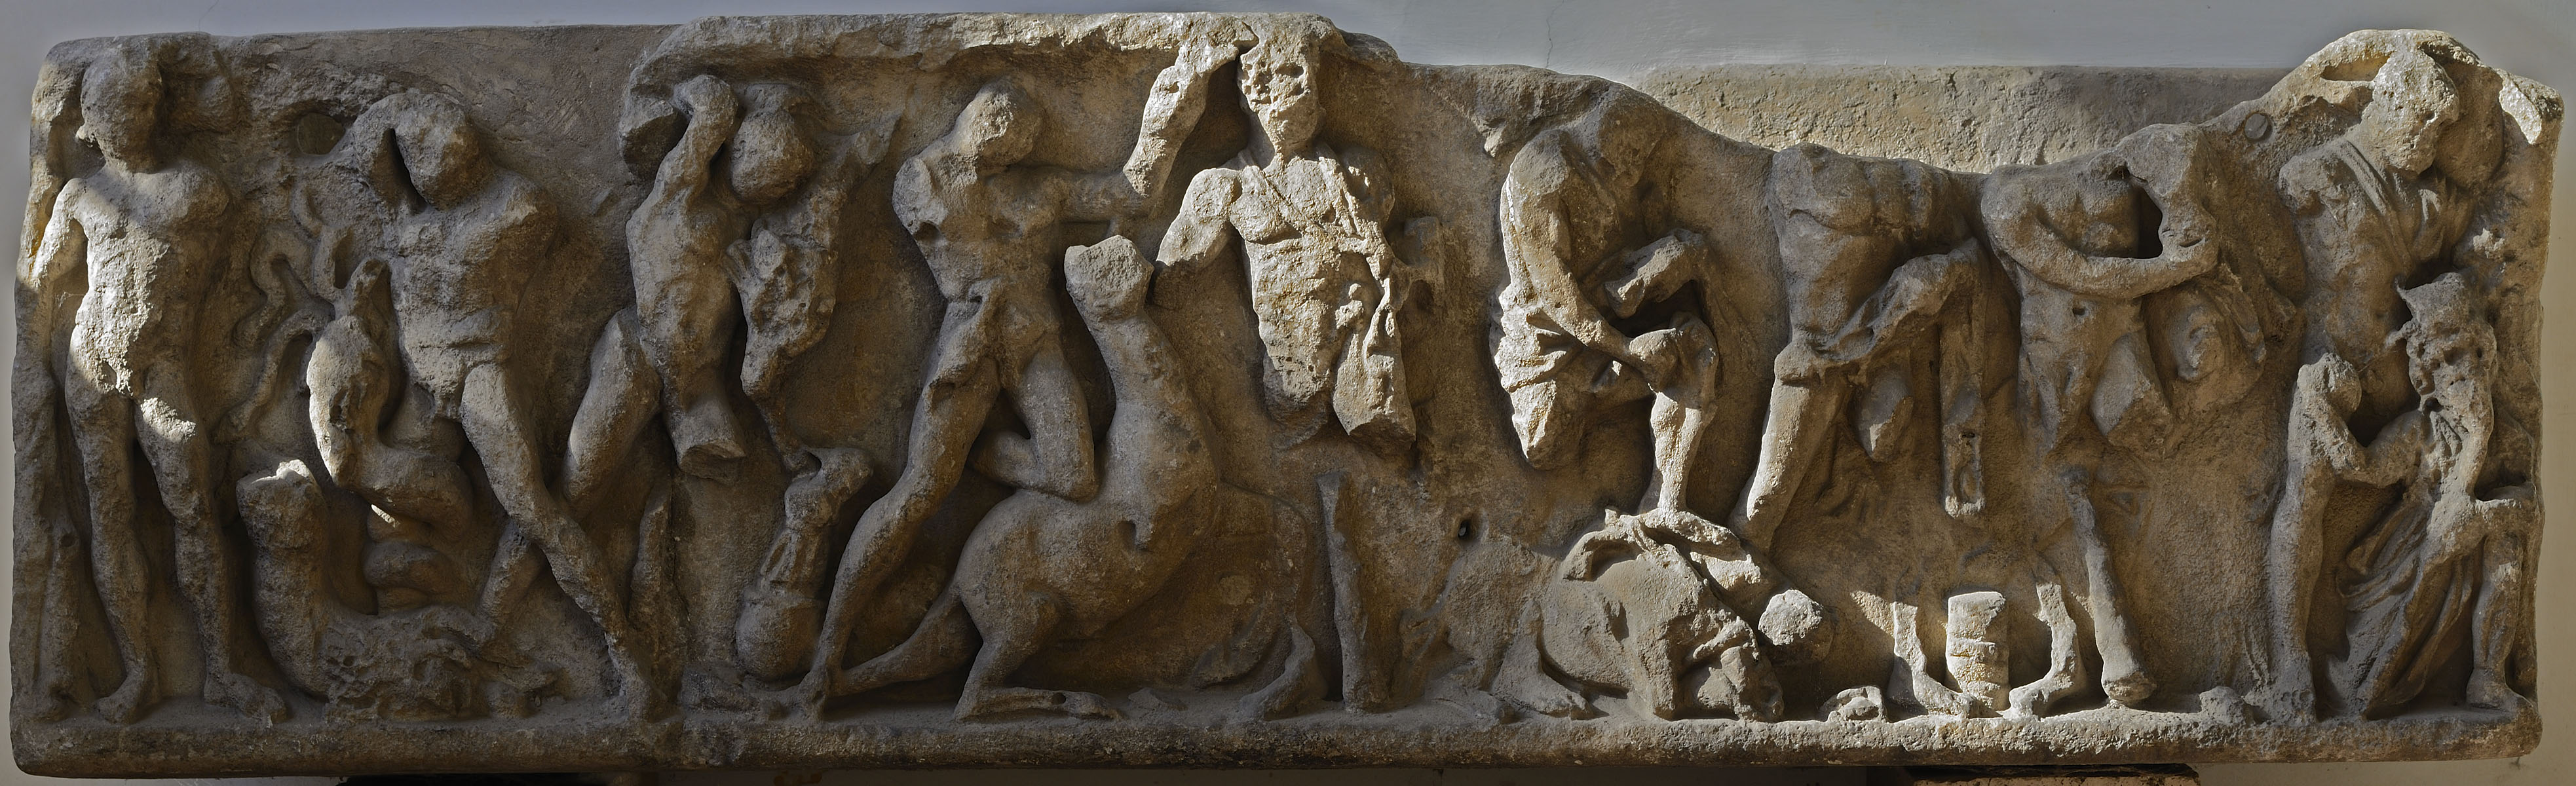 "Relief ""The Labours of Hercules"" (front panel of a sarcophagus). Marble. 2nd—3rd cent. CE. Rome, National Gallery of Ancient Art of Corsini Palace"